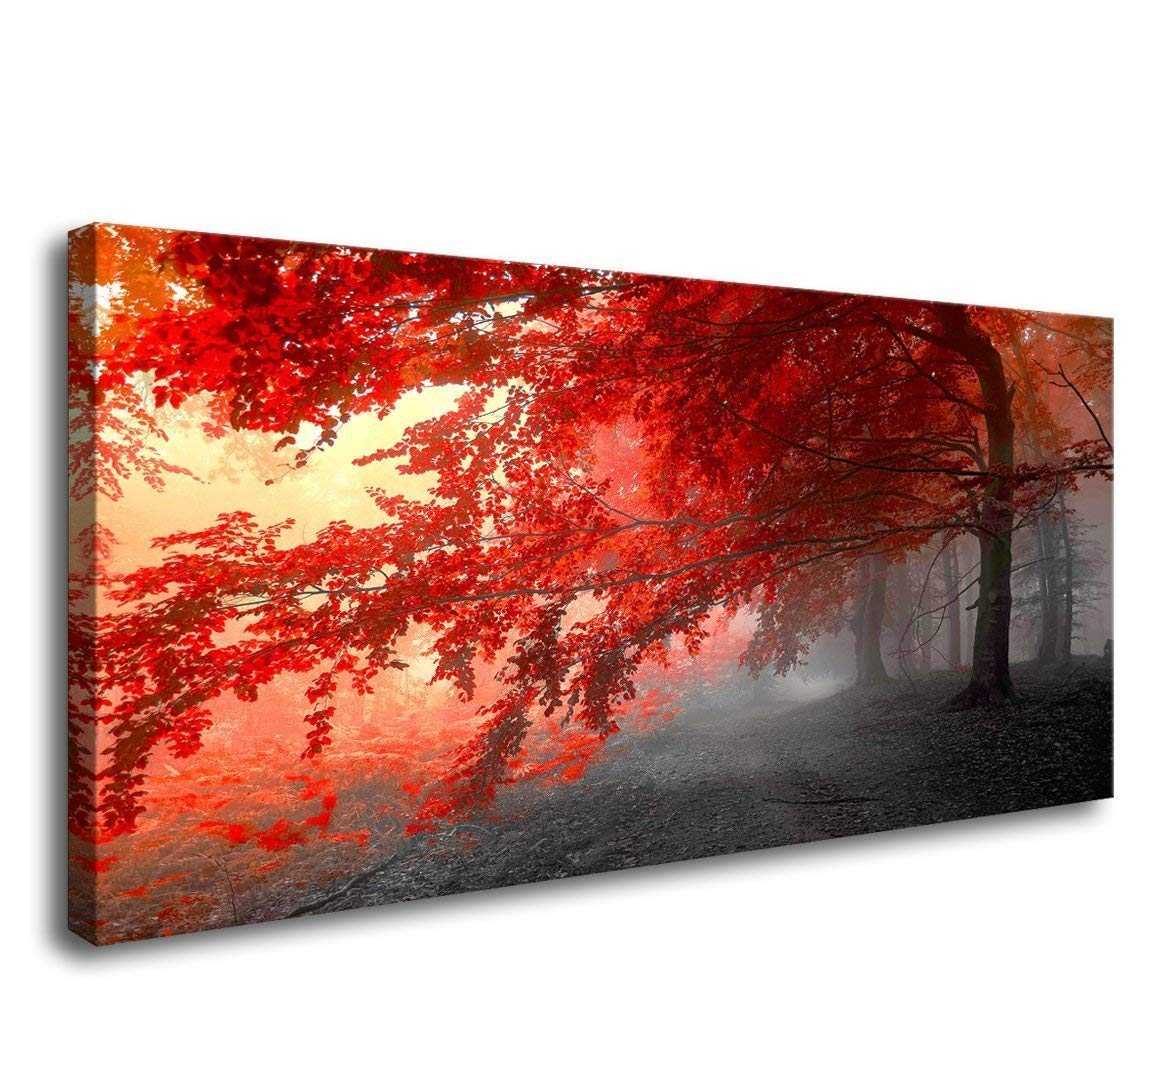 wall art Stretched Framed Ready Hang Flower Landscape Red Tree Flower Modern Painting Canvas Living Room Bedroom Office Wall Art Home Decoration